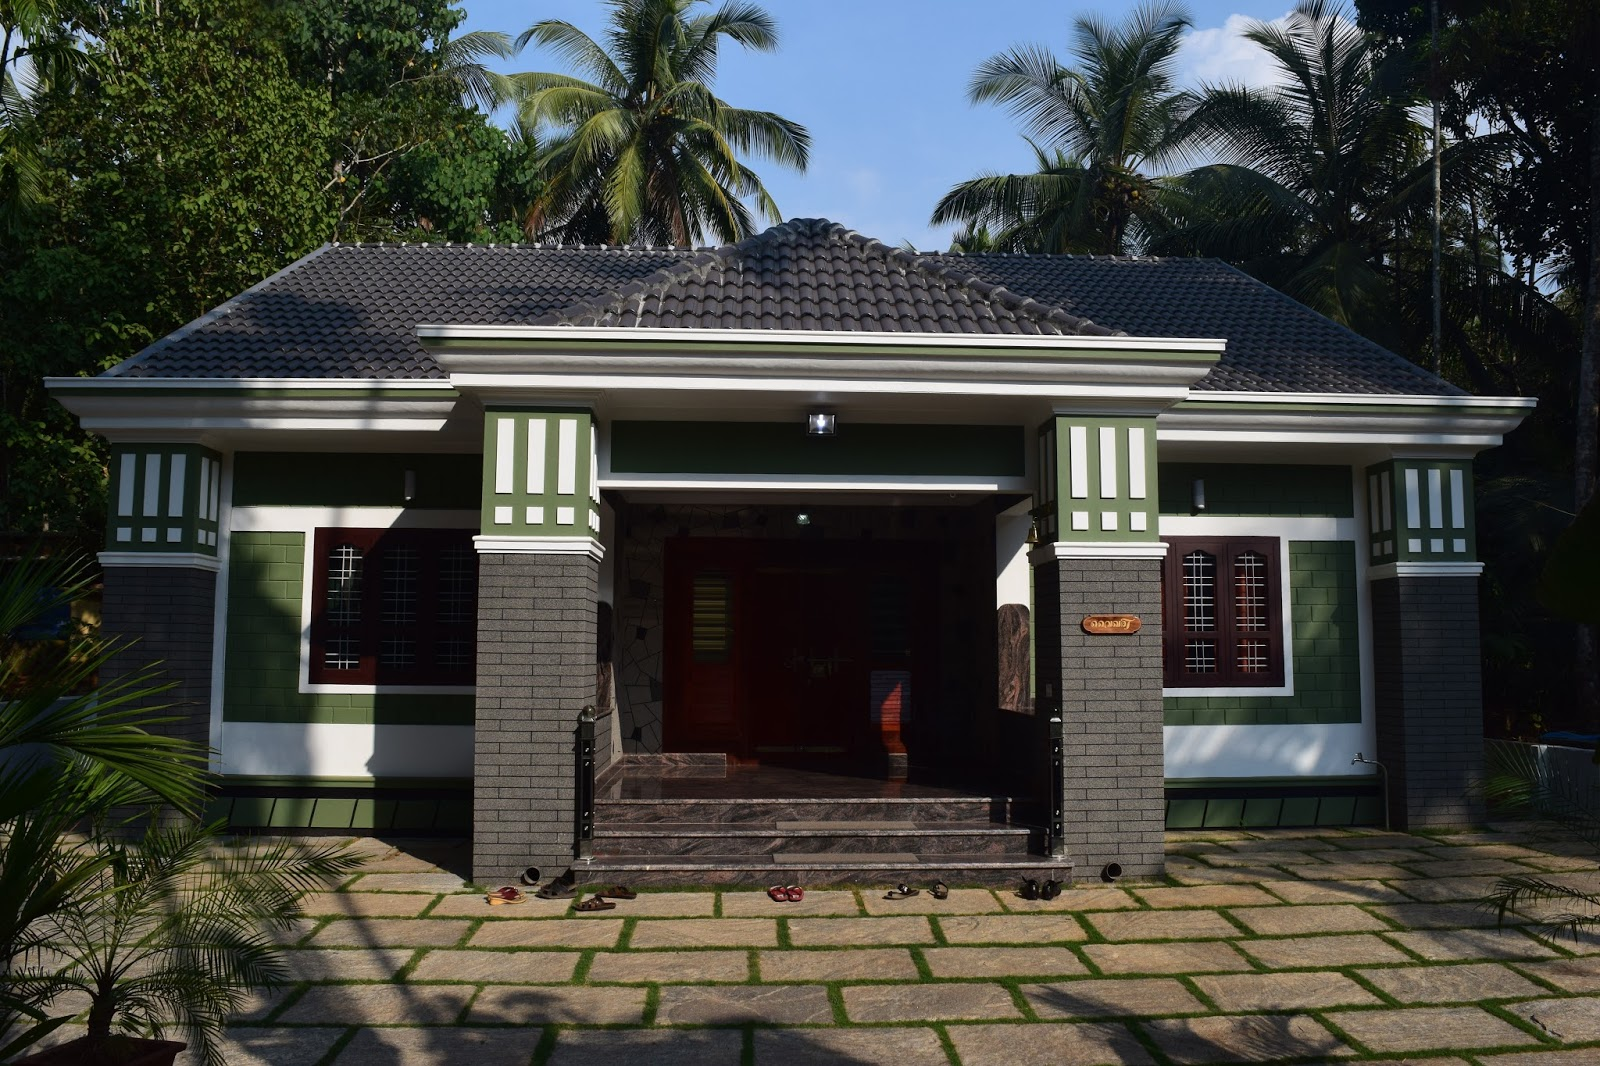 20 Lakh Home In Surat 3bhk German Style 20 Lakh 1400 Sqft Home At Malappuram